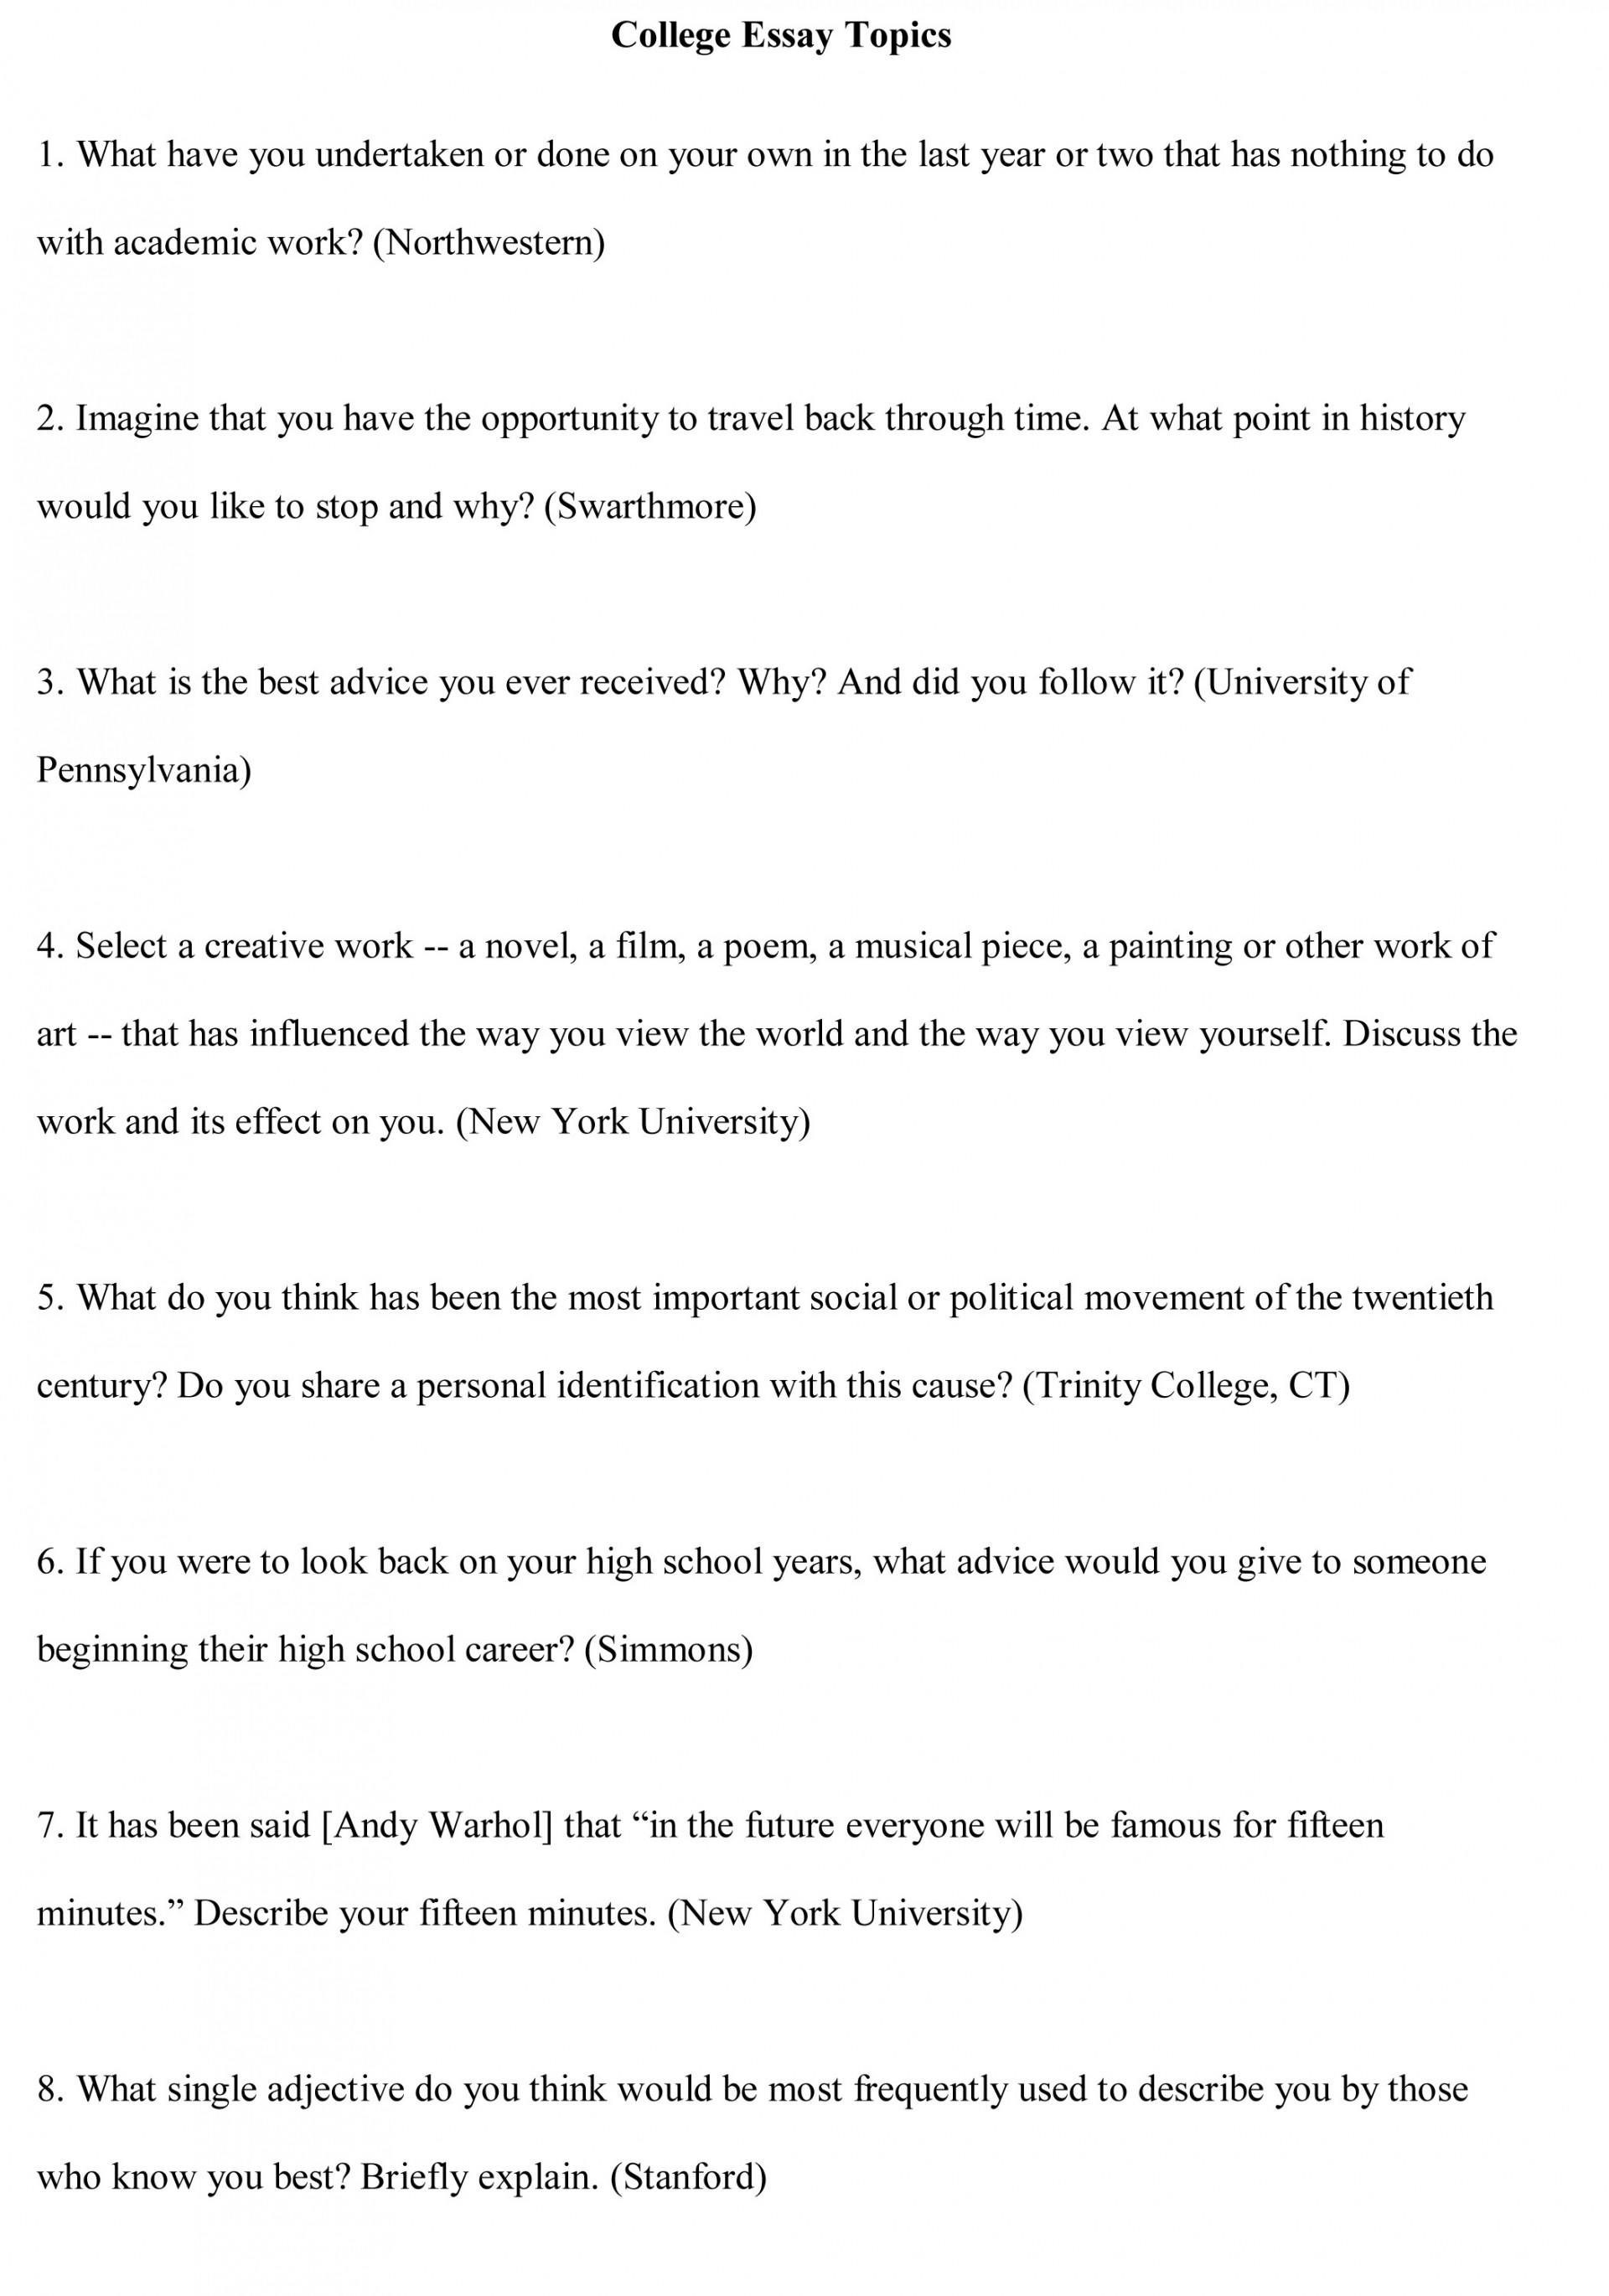 010 College Essay Topics Free Sample Example For Unbelievable An Interesting Expository 1920